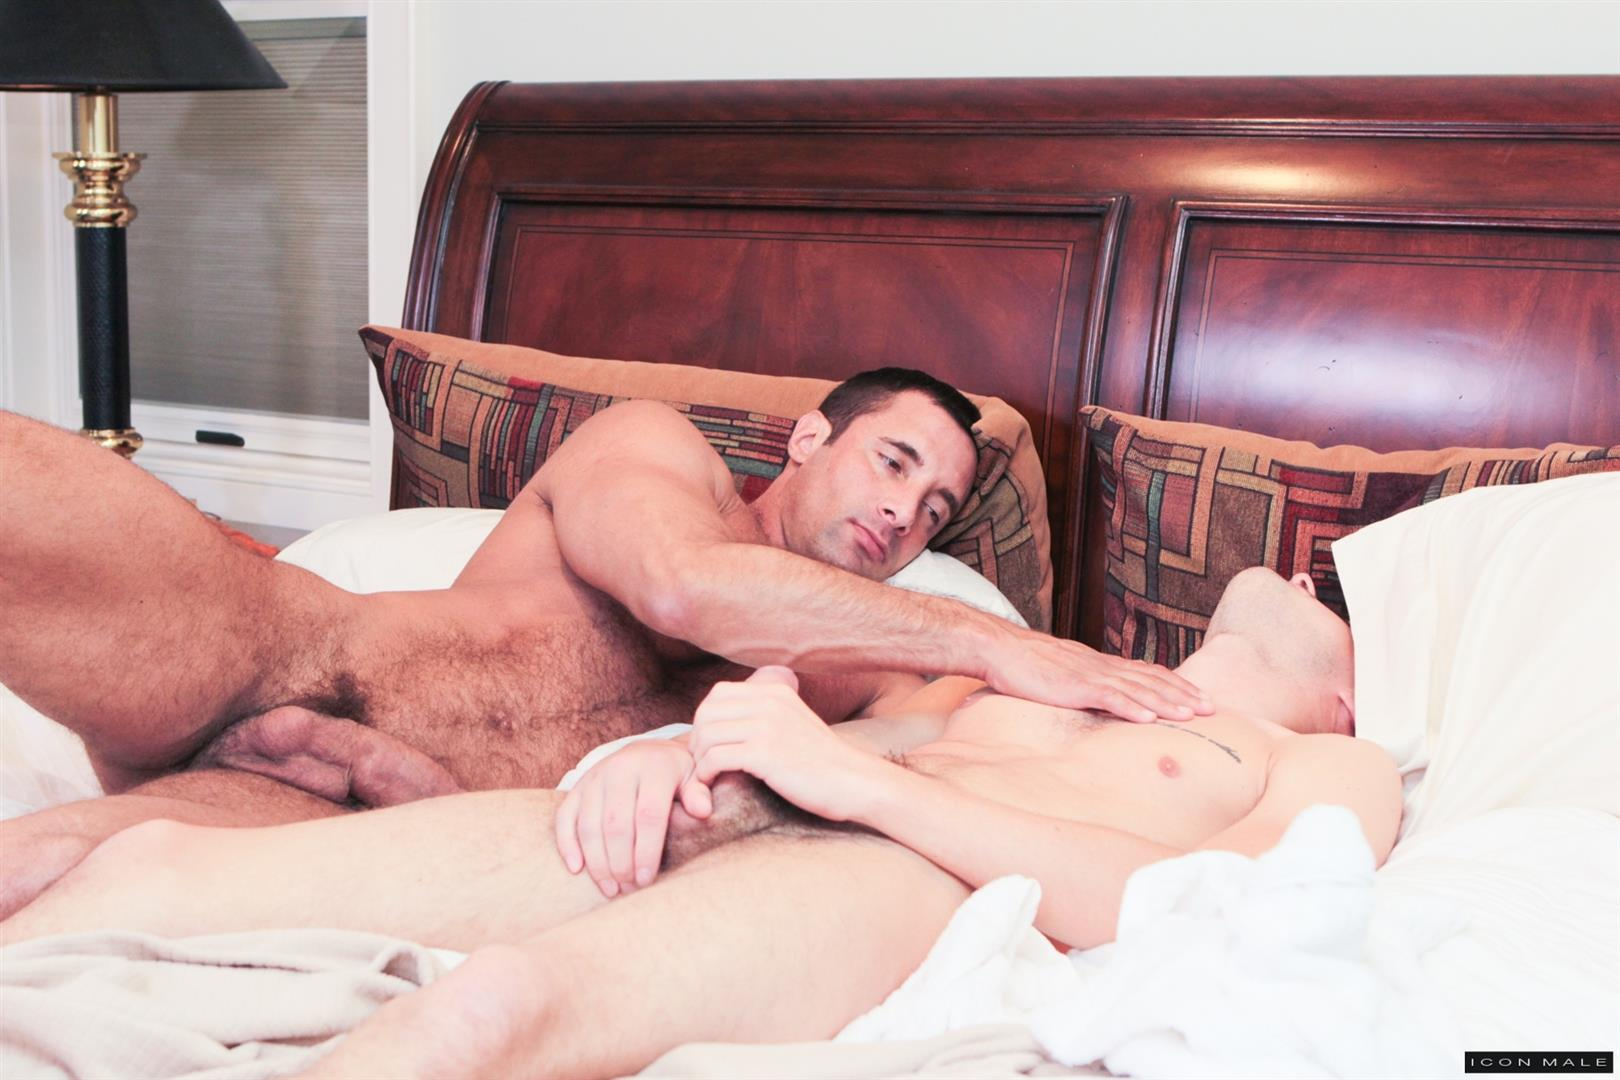 Icon Male Nick Capra and Hunter Hairy Muscle Daddy Fucking A Twink Page Big Uncut Cock Amateur Gay Porn 02 Twink Hunter Page Getting Fucked By Hairy Muscle Daddy Nick Capra